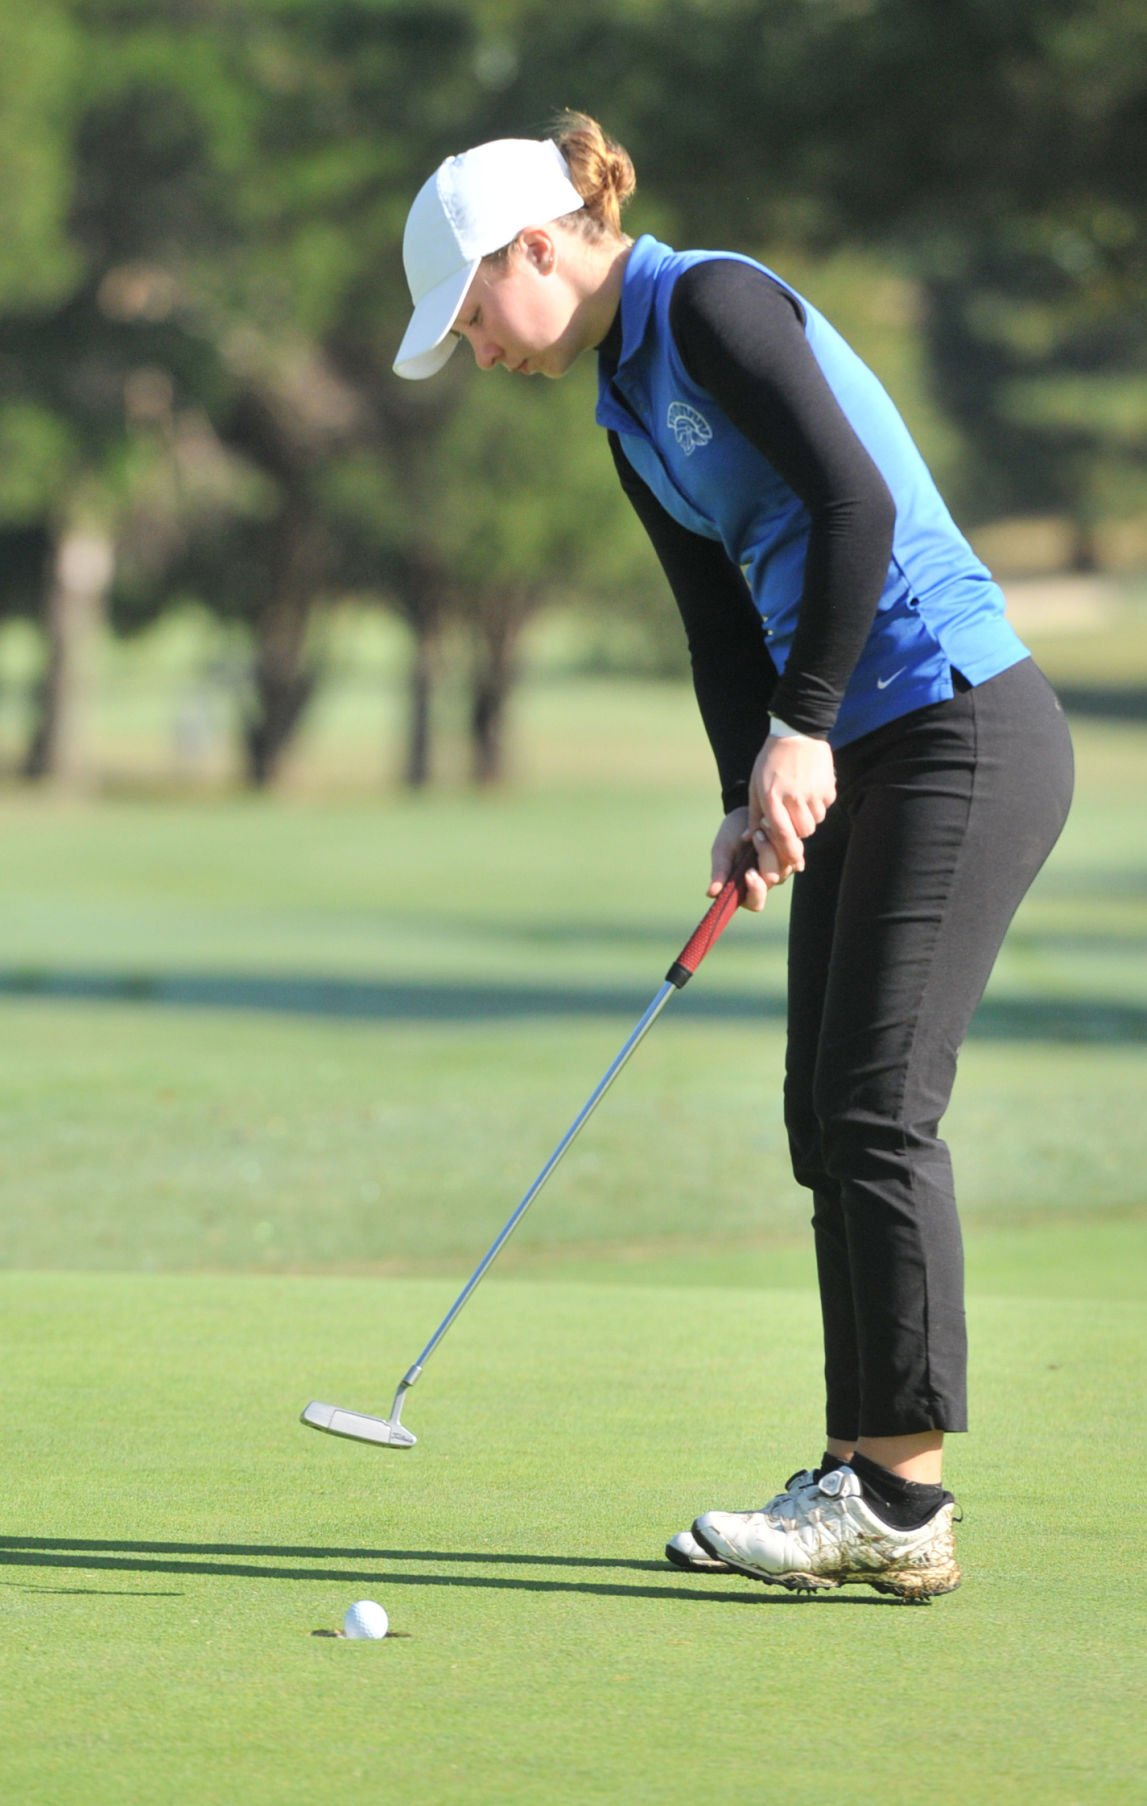 FALL SPORTS: Golf is a go, more decisions to be made July 28